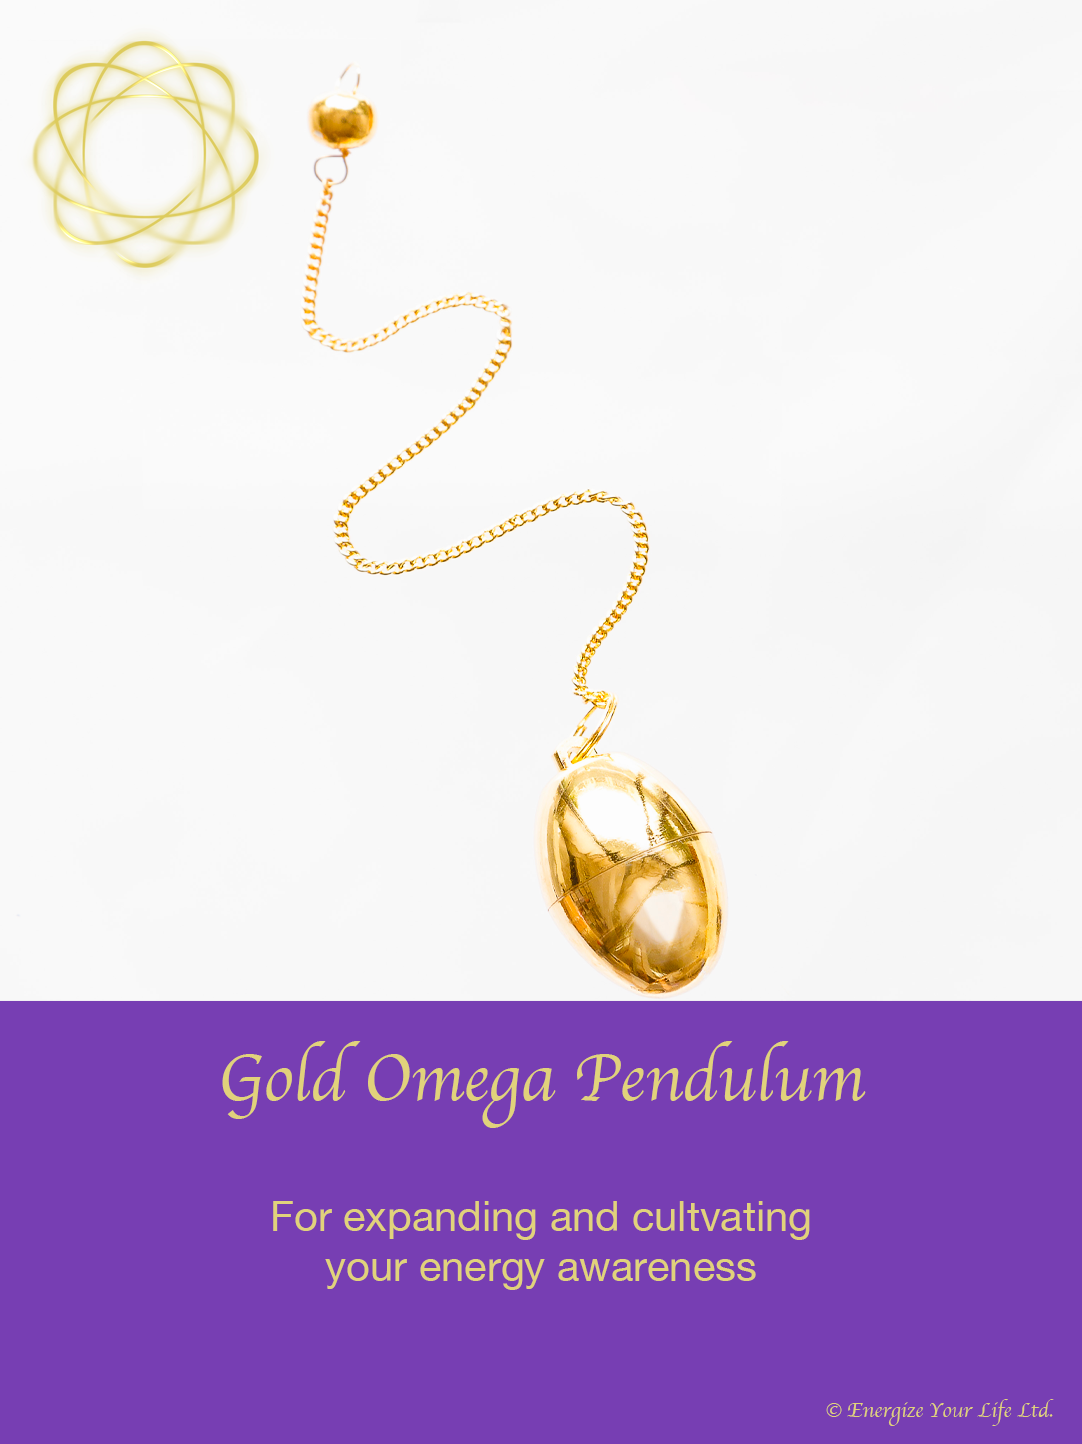 image of gold omega pendulum